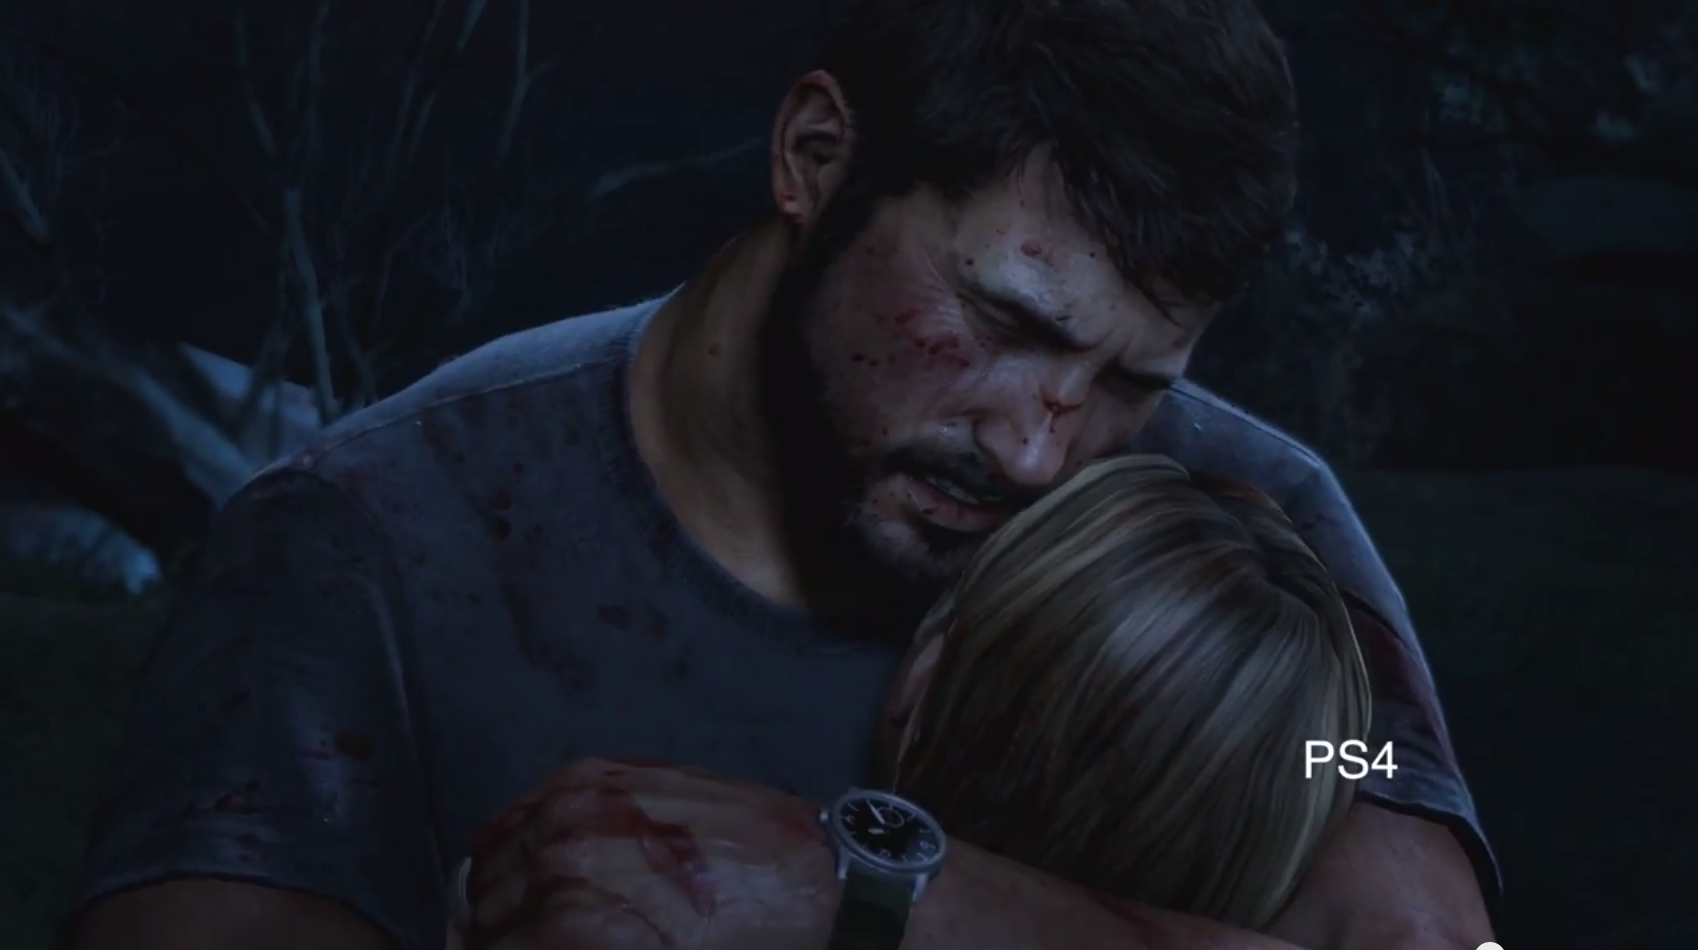 The Last of Us vs. Remastered Graphical Comparison